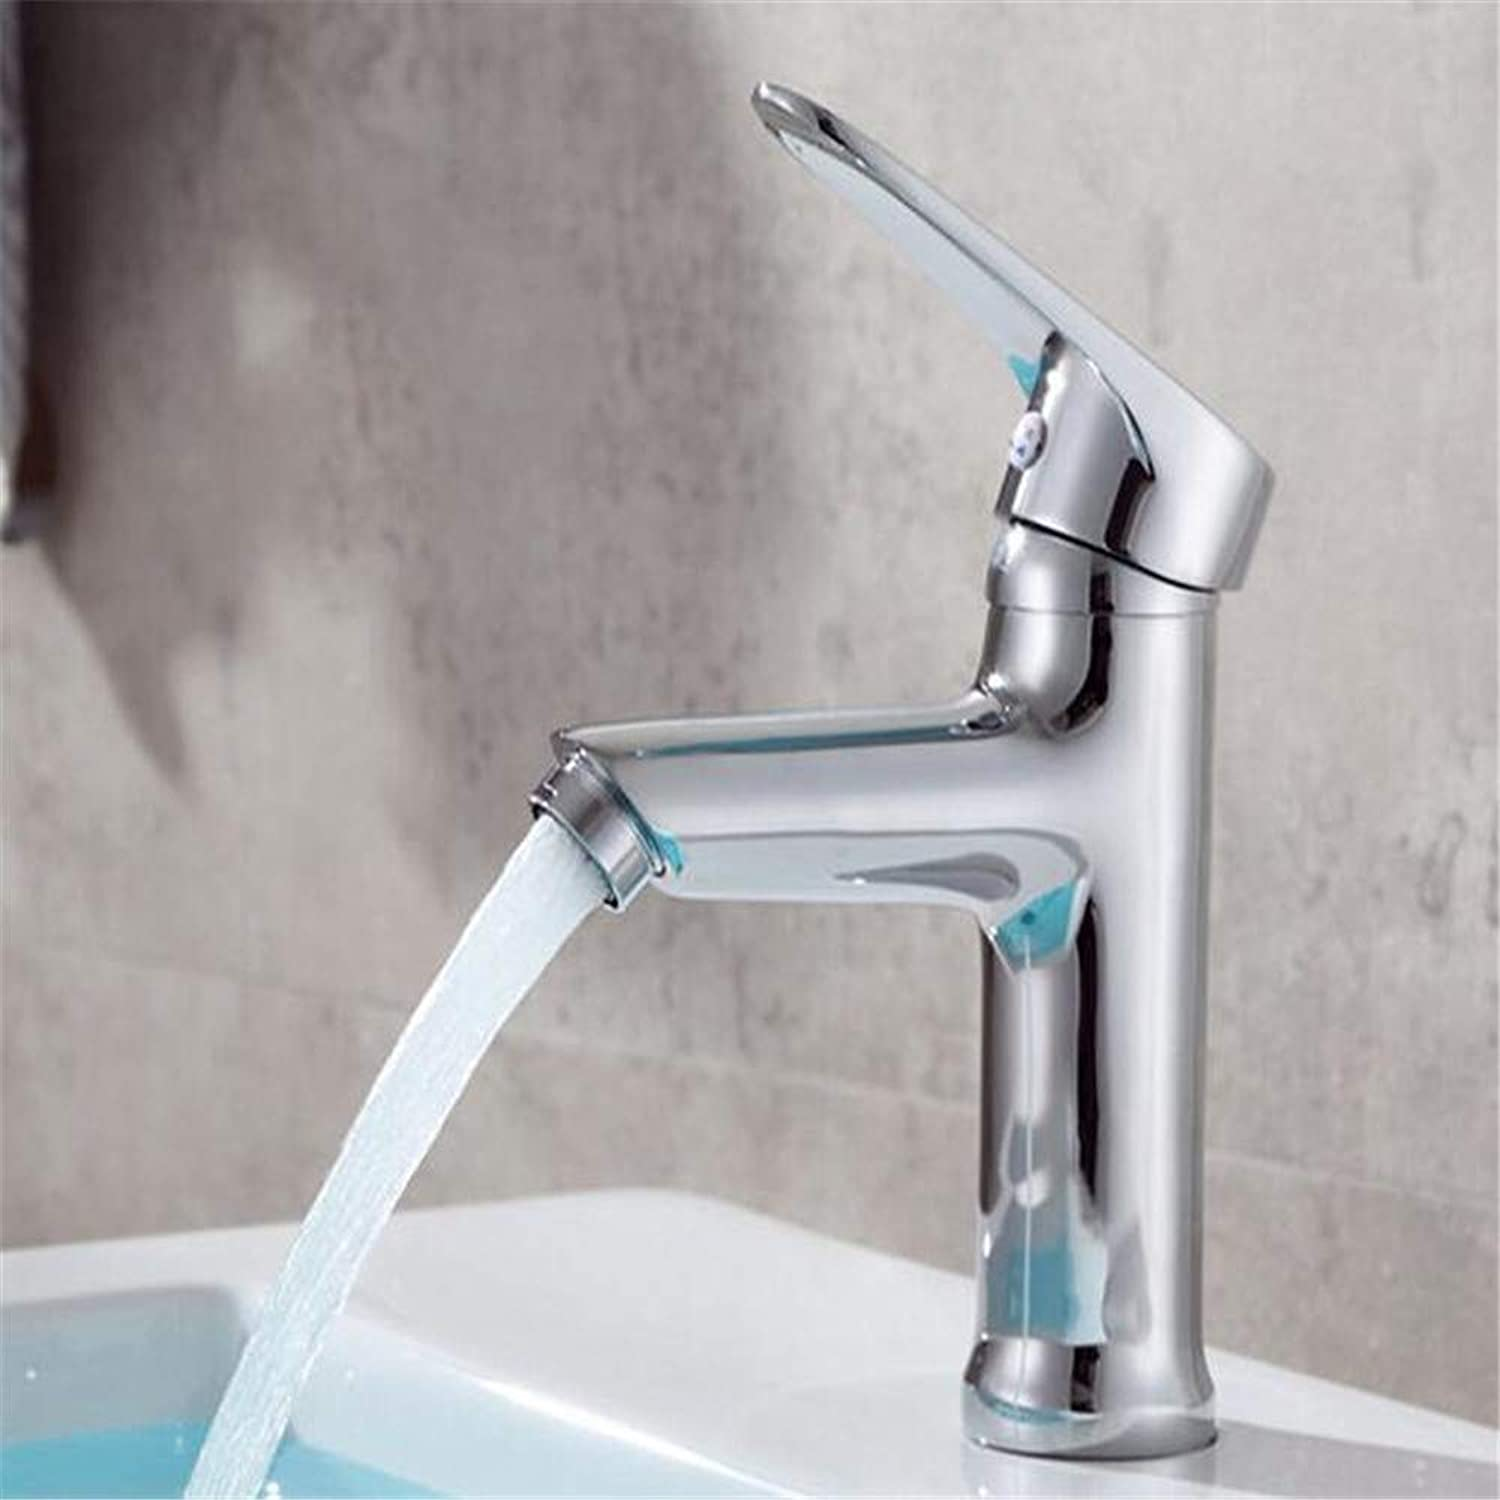 Bathroom Sink Copper Basin Mixer Valve Faucet Cold and Hot Single Basin Washbasin Faucet Ceramic Basin Faucet